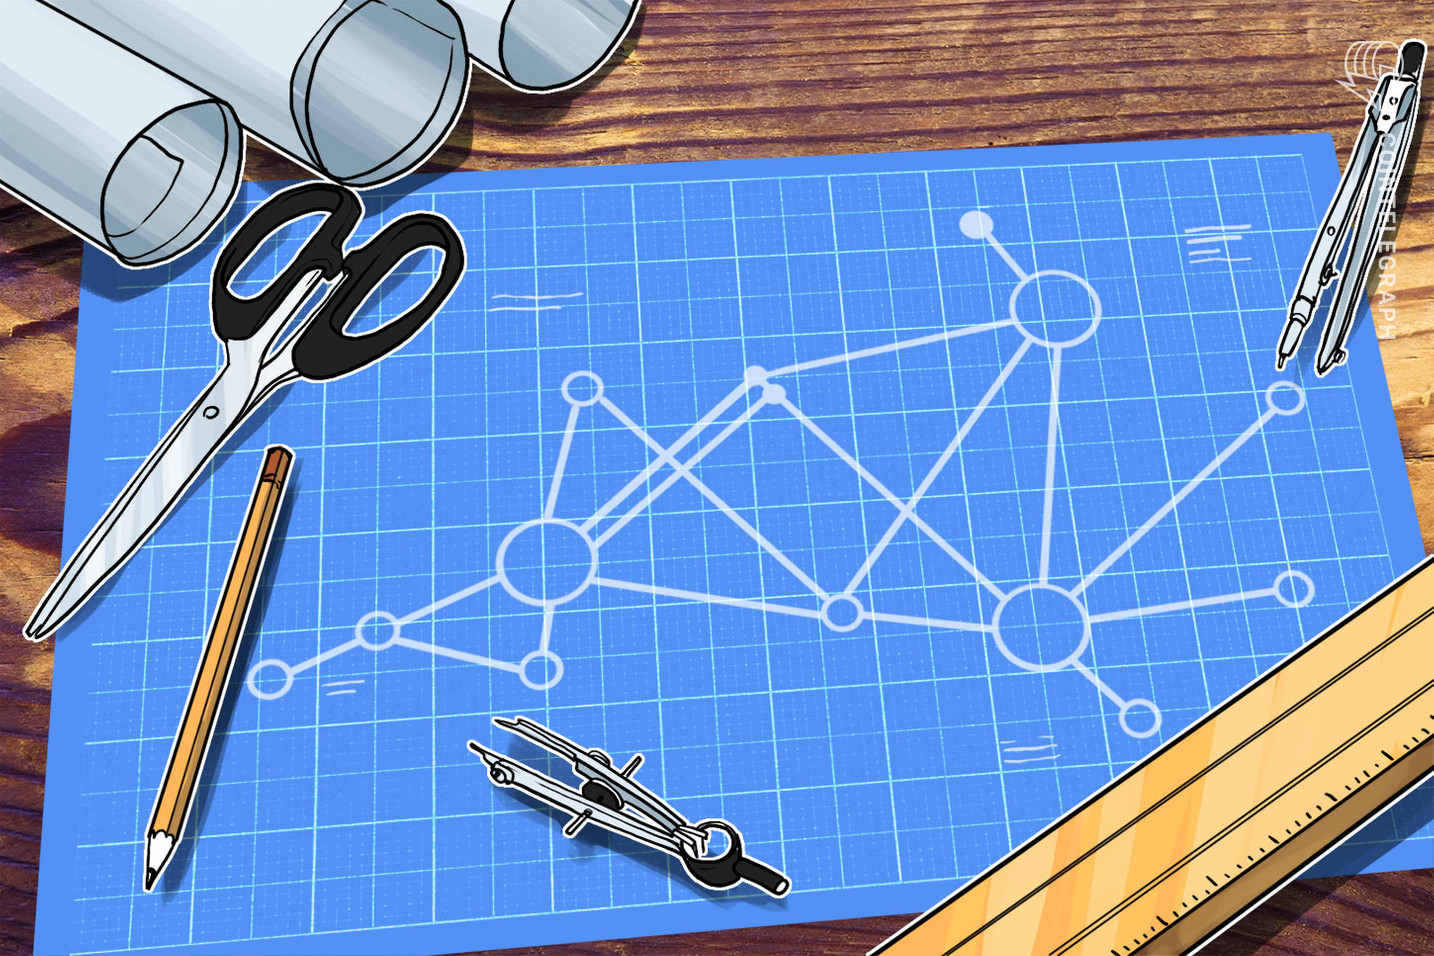 Corda Blockchain Trade Finance Platform Marco Polo Sees First Transactions